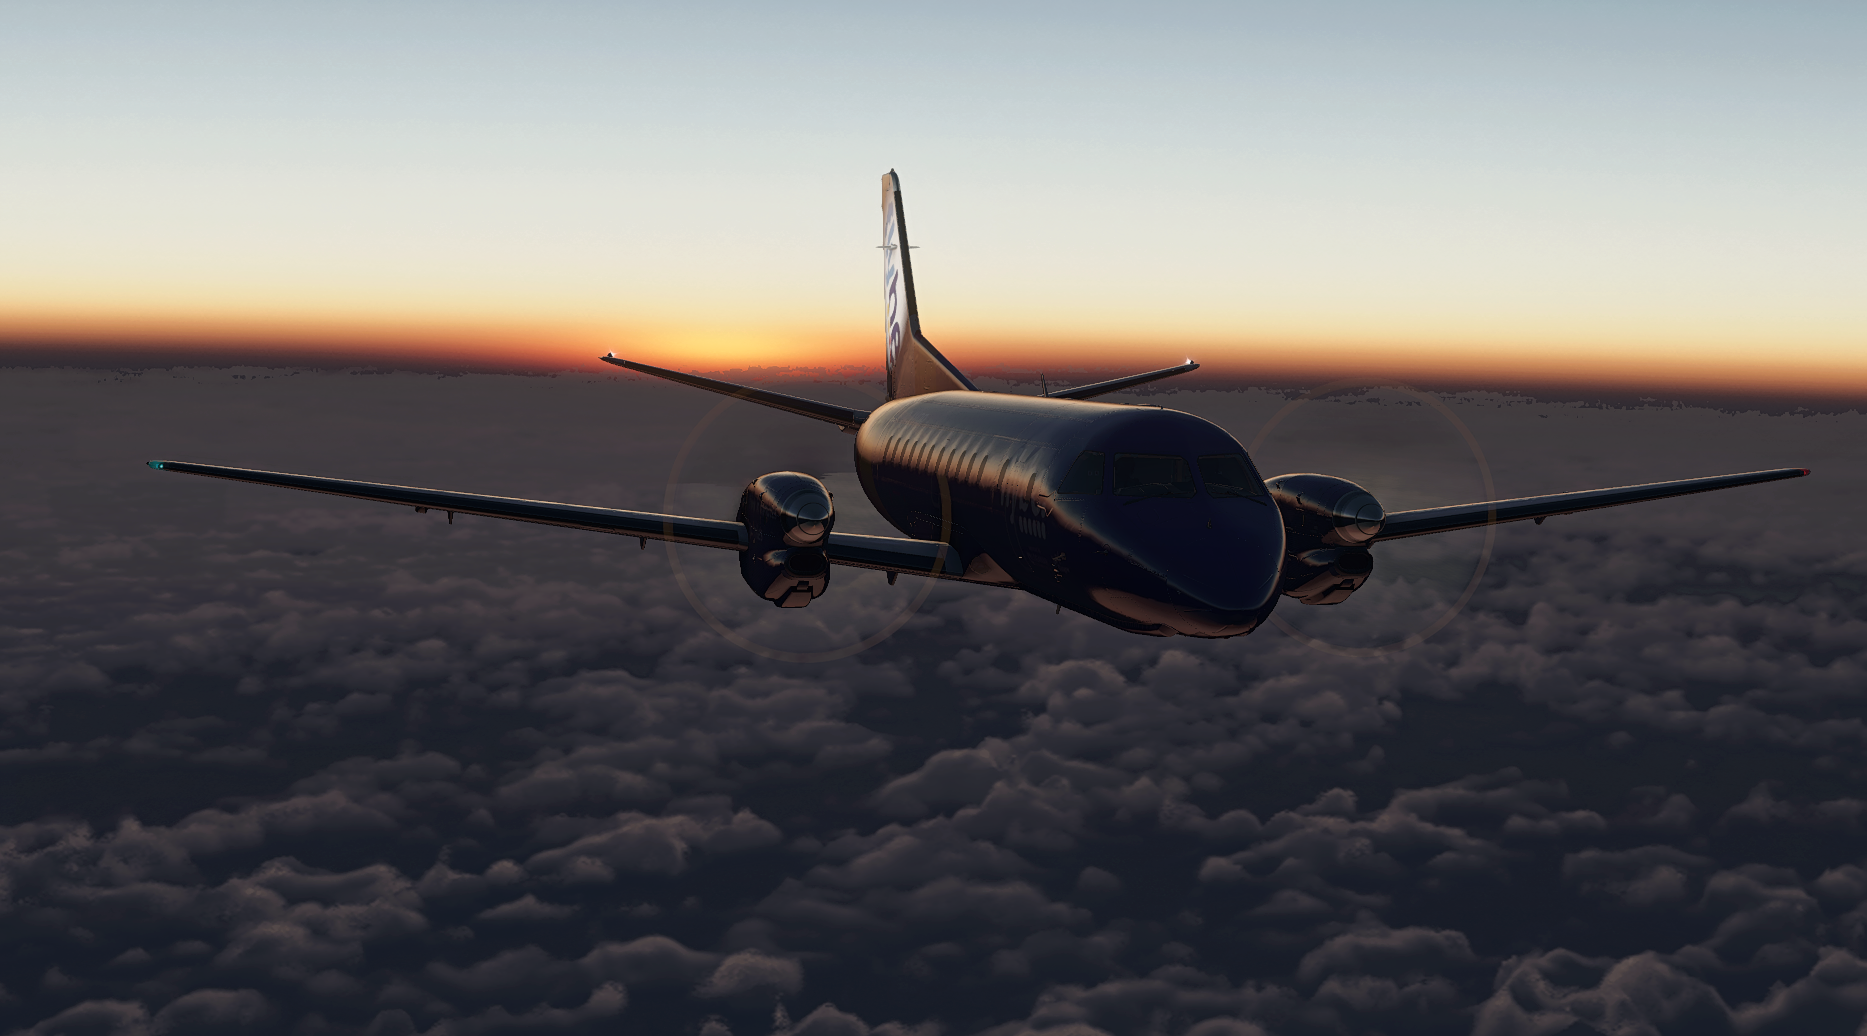 X-Plane Screenshot 2019.06.05 - 22.15.36.52 (2).png